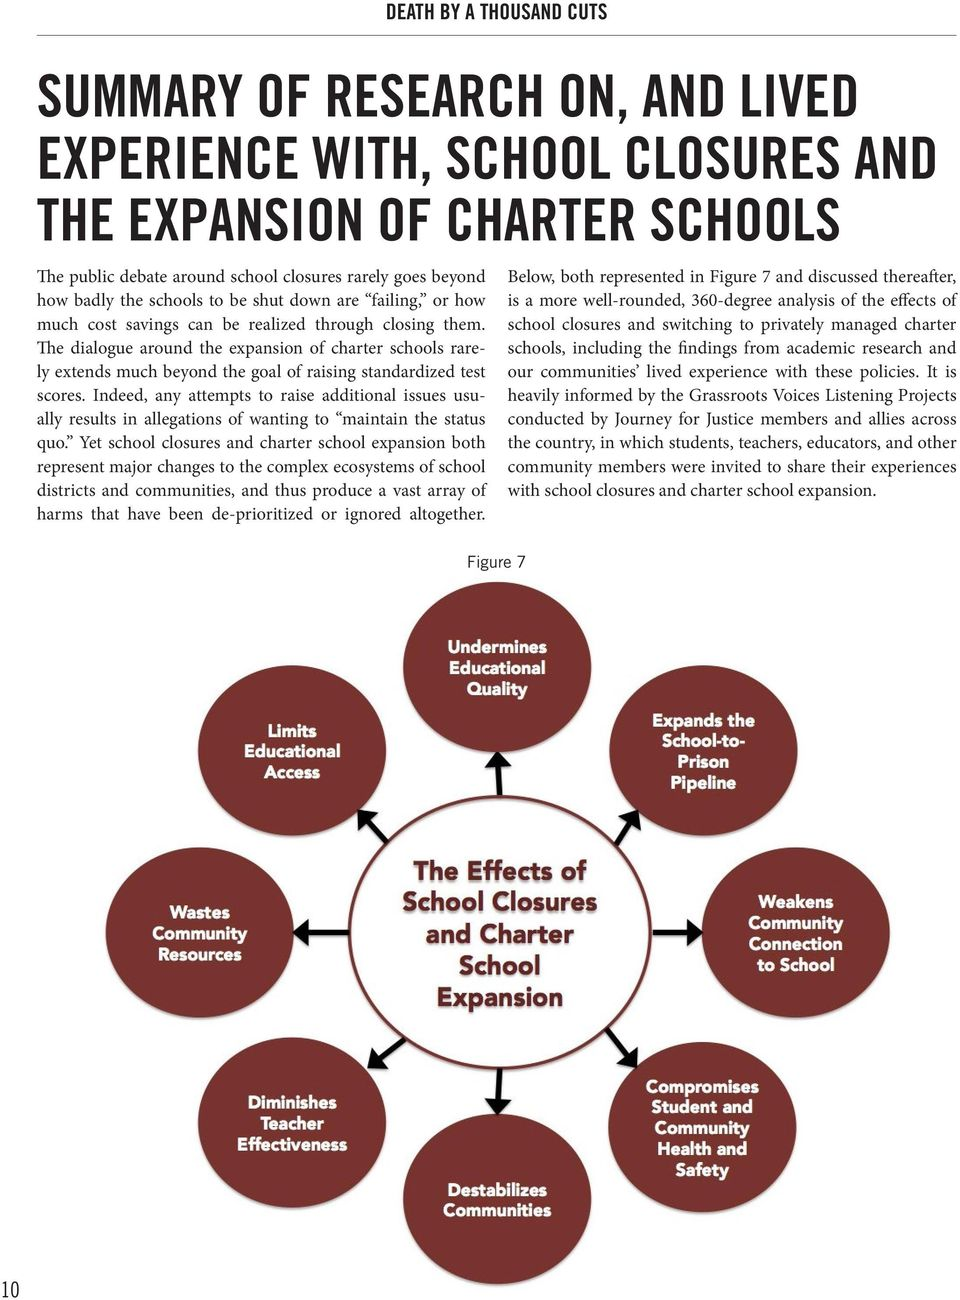 The dialogue around the expansion of charter schools rarely extends much beyond the goal of raising standardized test scores.